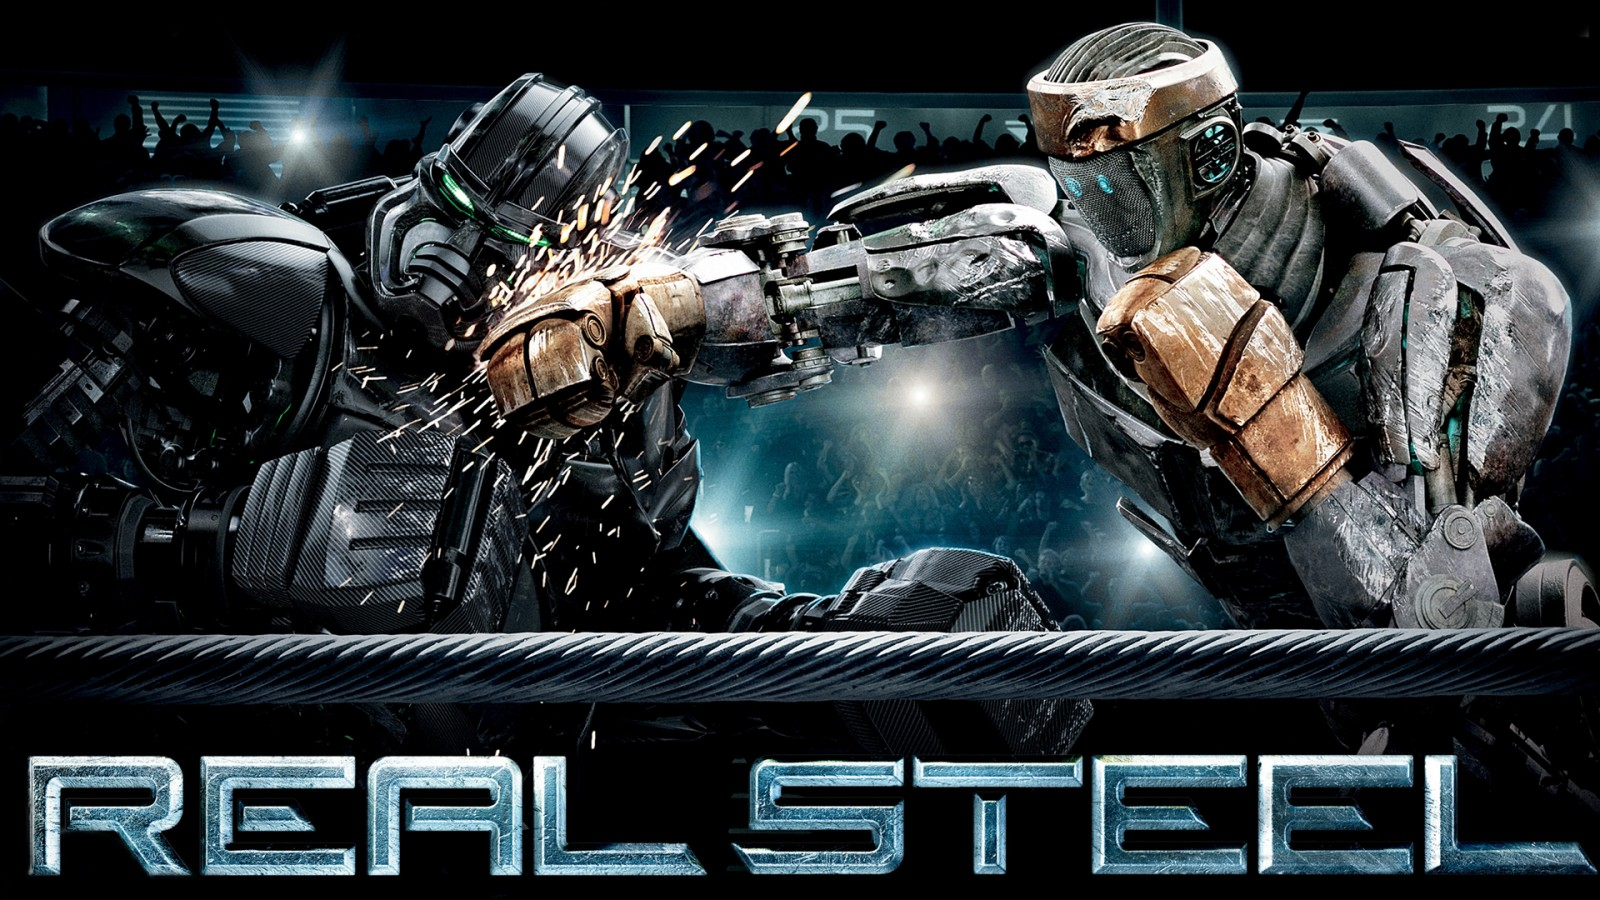 Iphone 5 Space Wallpaper Hd Real Steel Battle Wallpapers Hd Wallpapers Id 10393